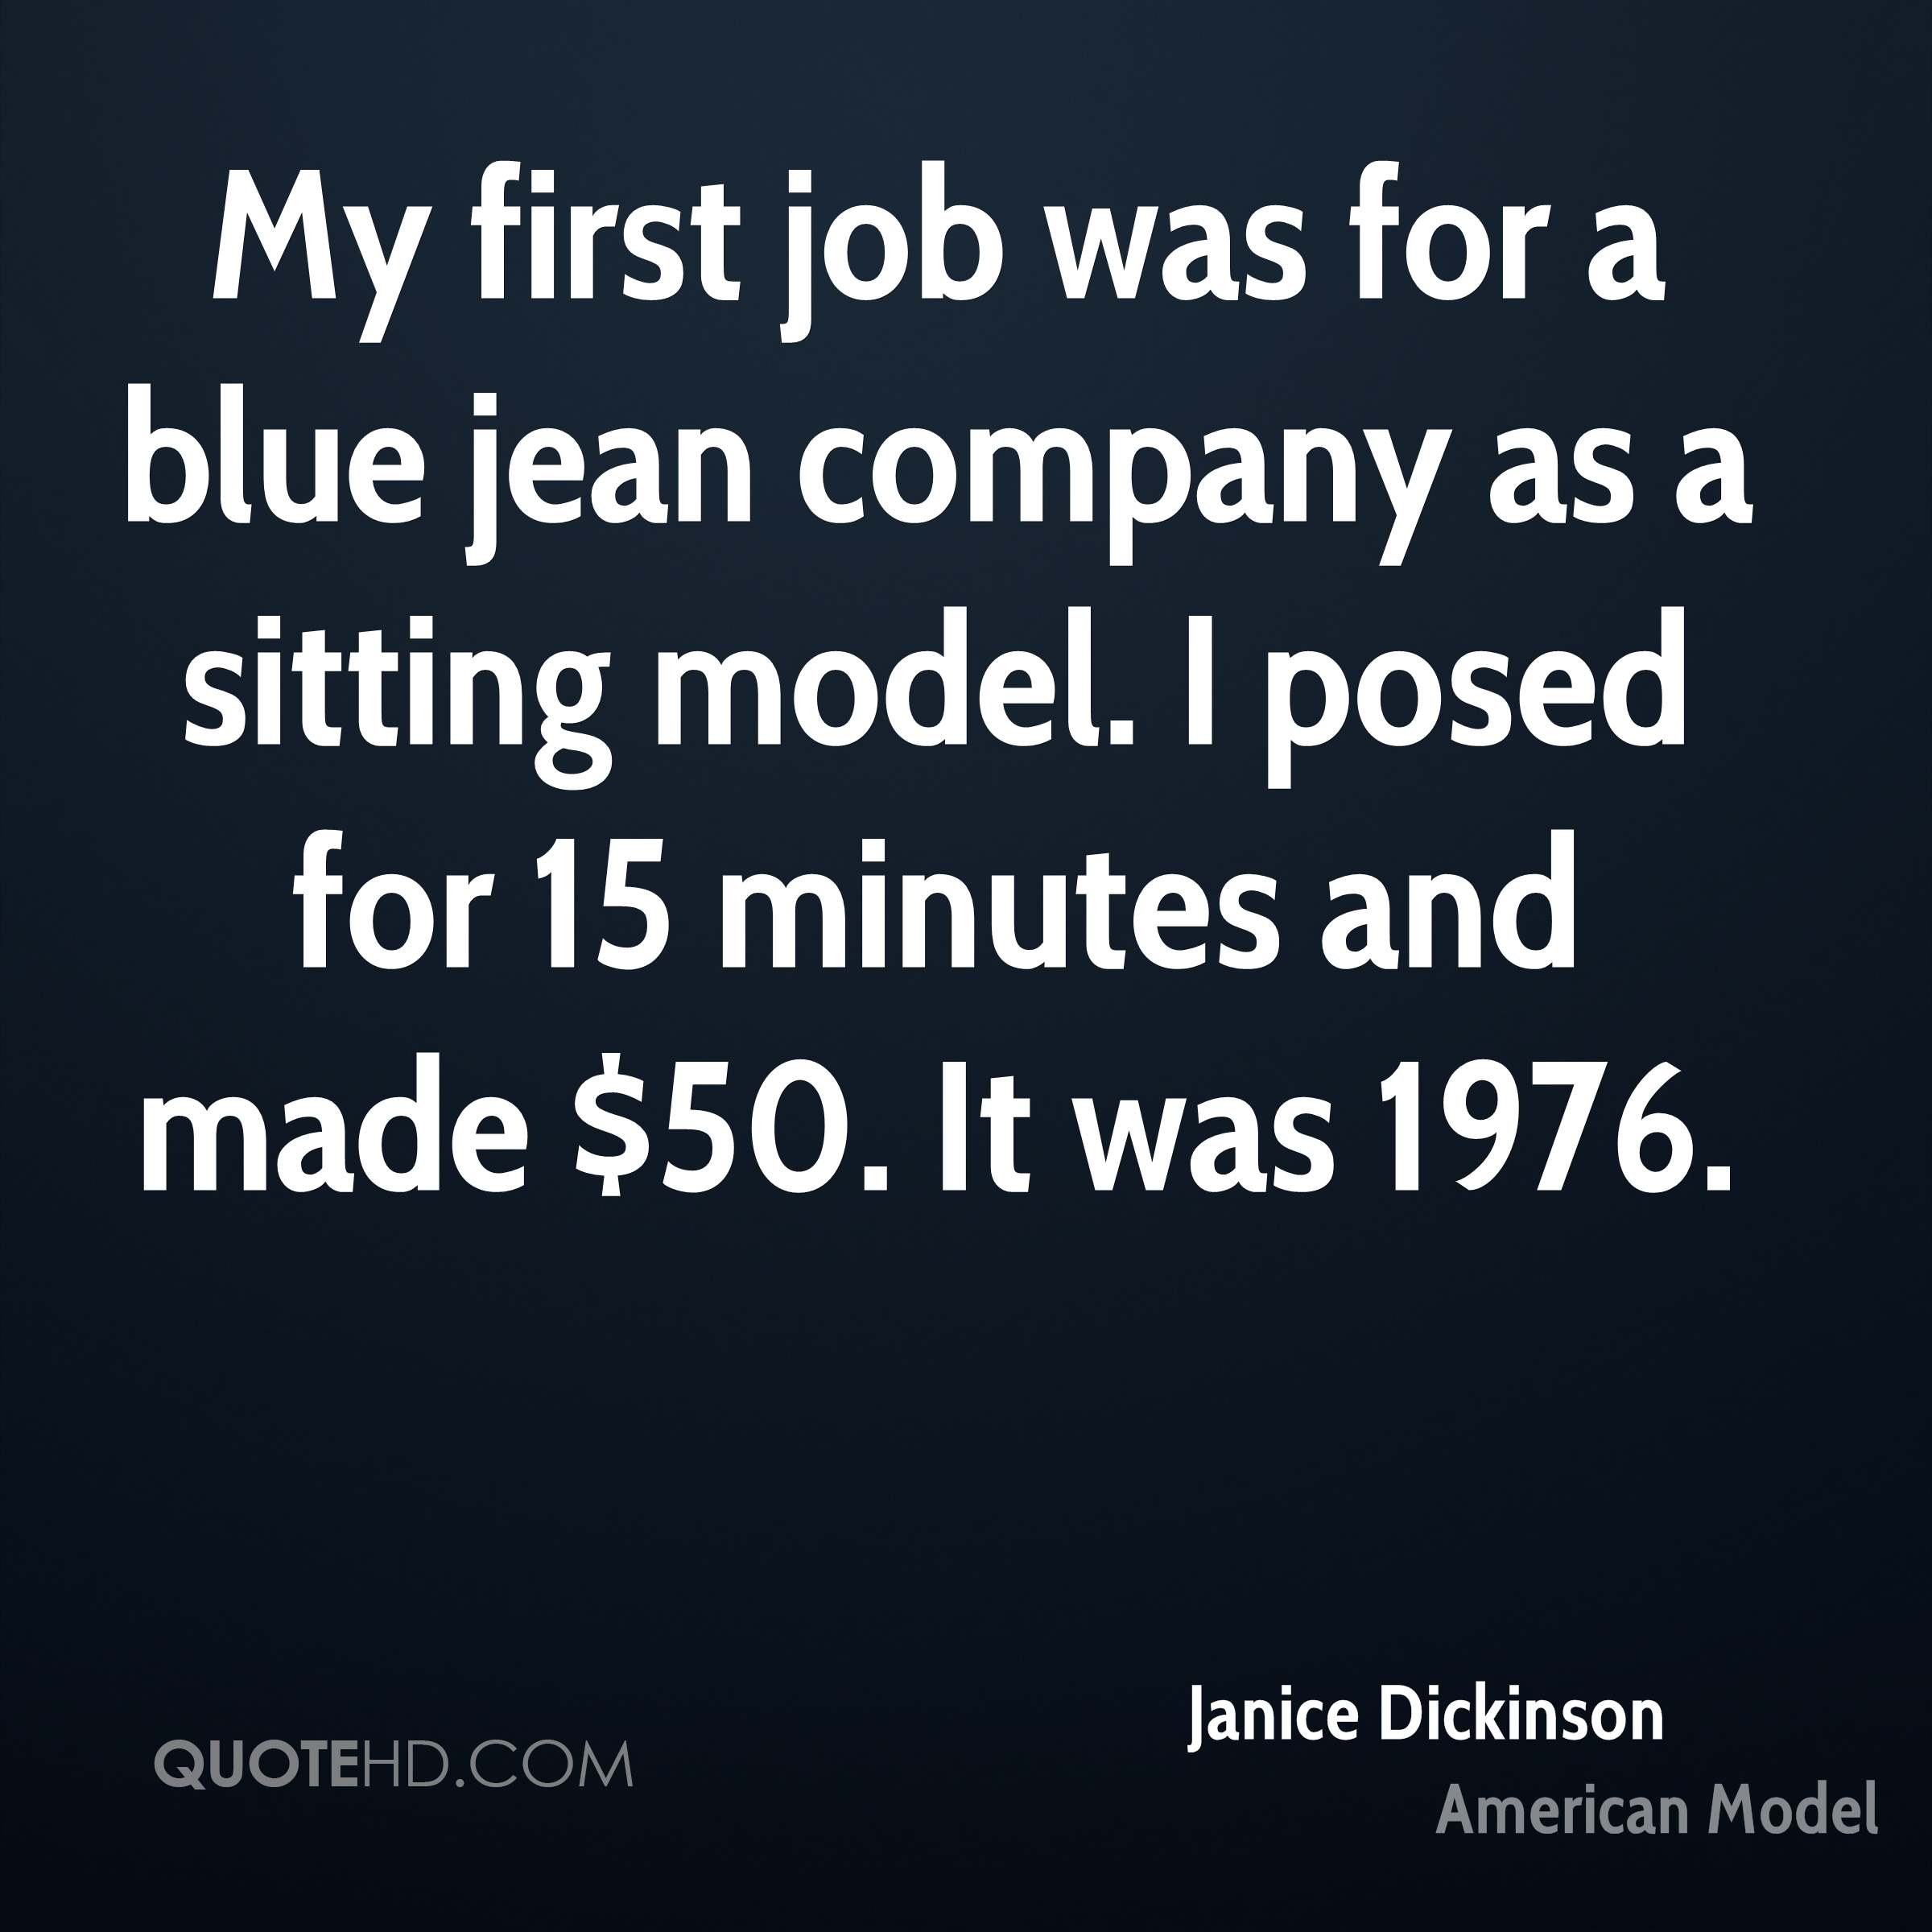 My first job was for a blue jean company as a sitting model. I posed for 15 minutes and made $50. It was 1976.